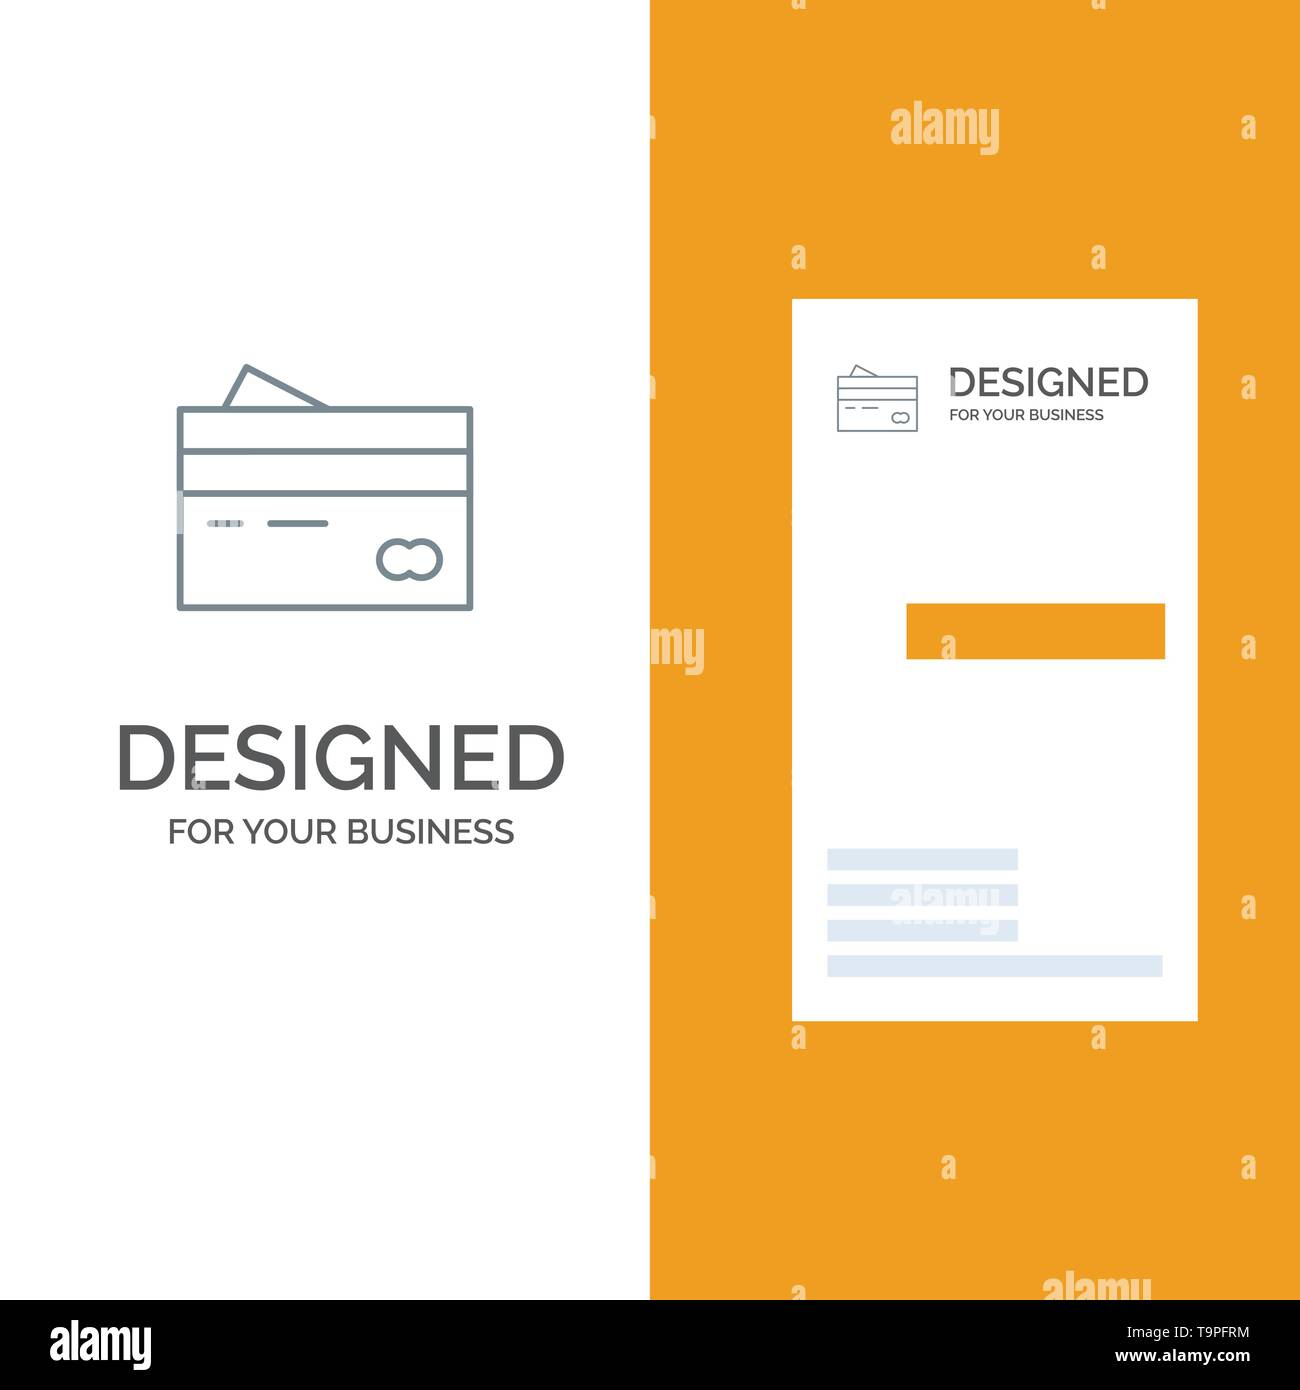 Credit card, Banking, Card, Cards, Credit, Finance, Money, Shopping Grey Logo Design and Business Card Template - Stock Image